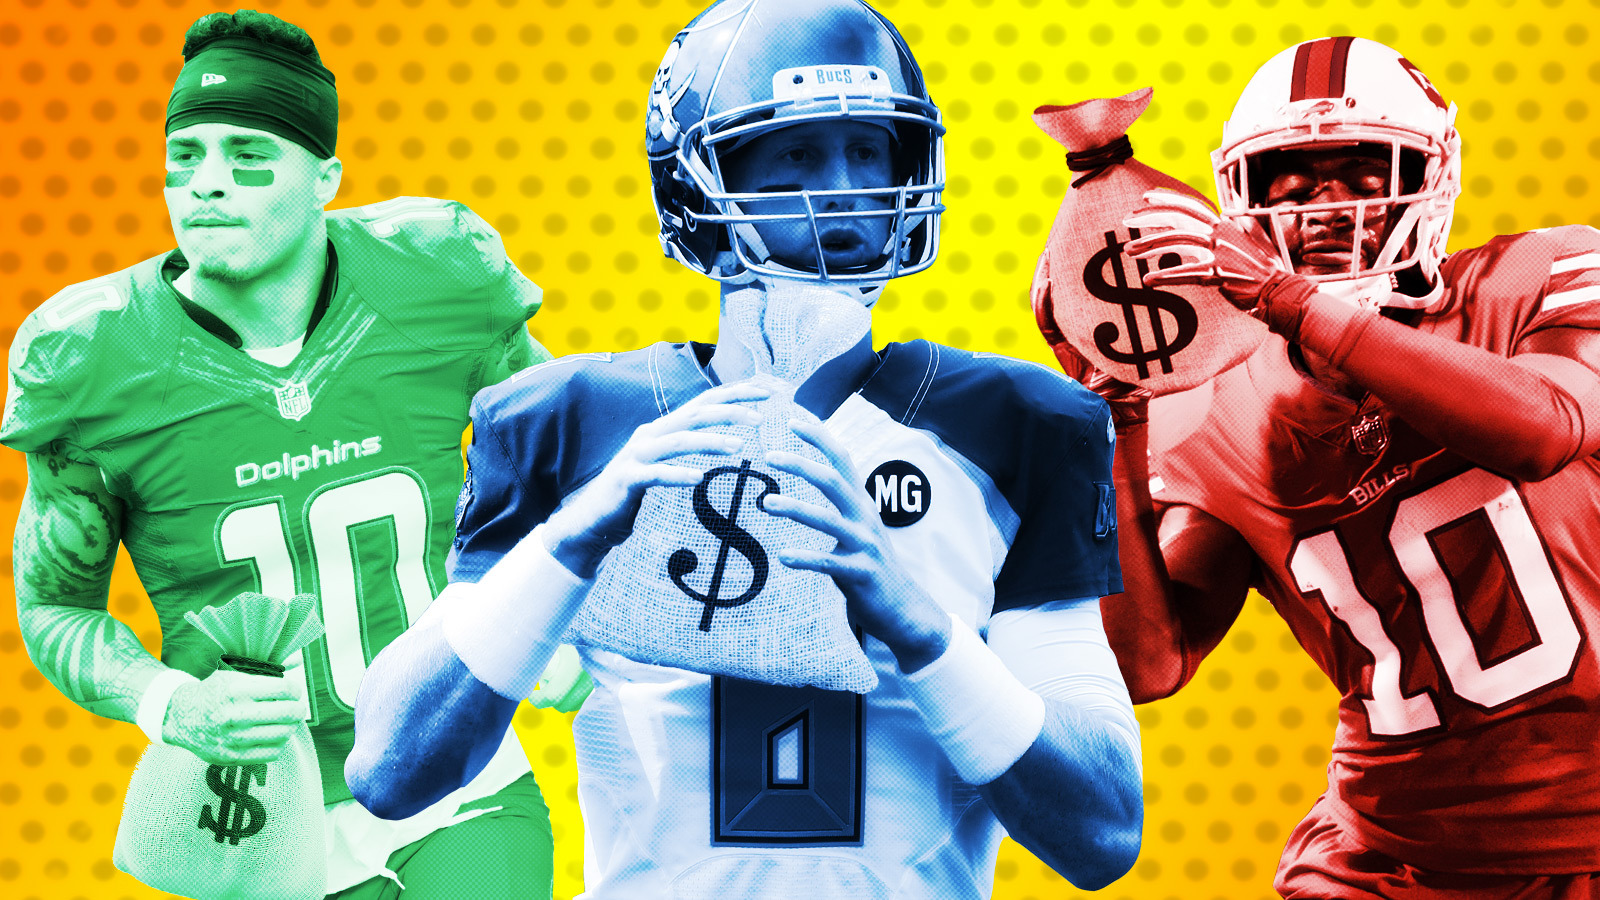 yardbarker quizzes games the mo money mo problems season in the nfl is officially upon us quiz